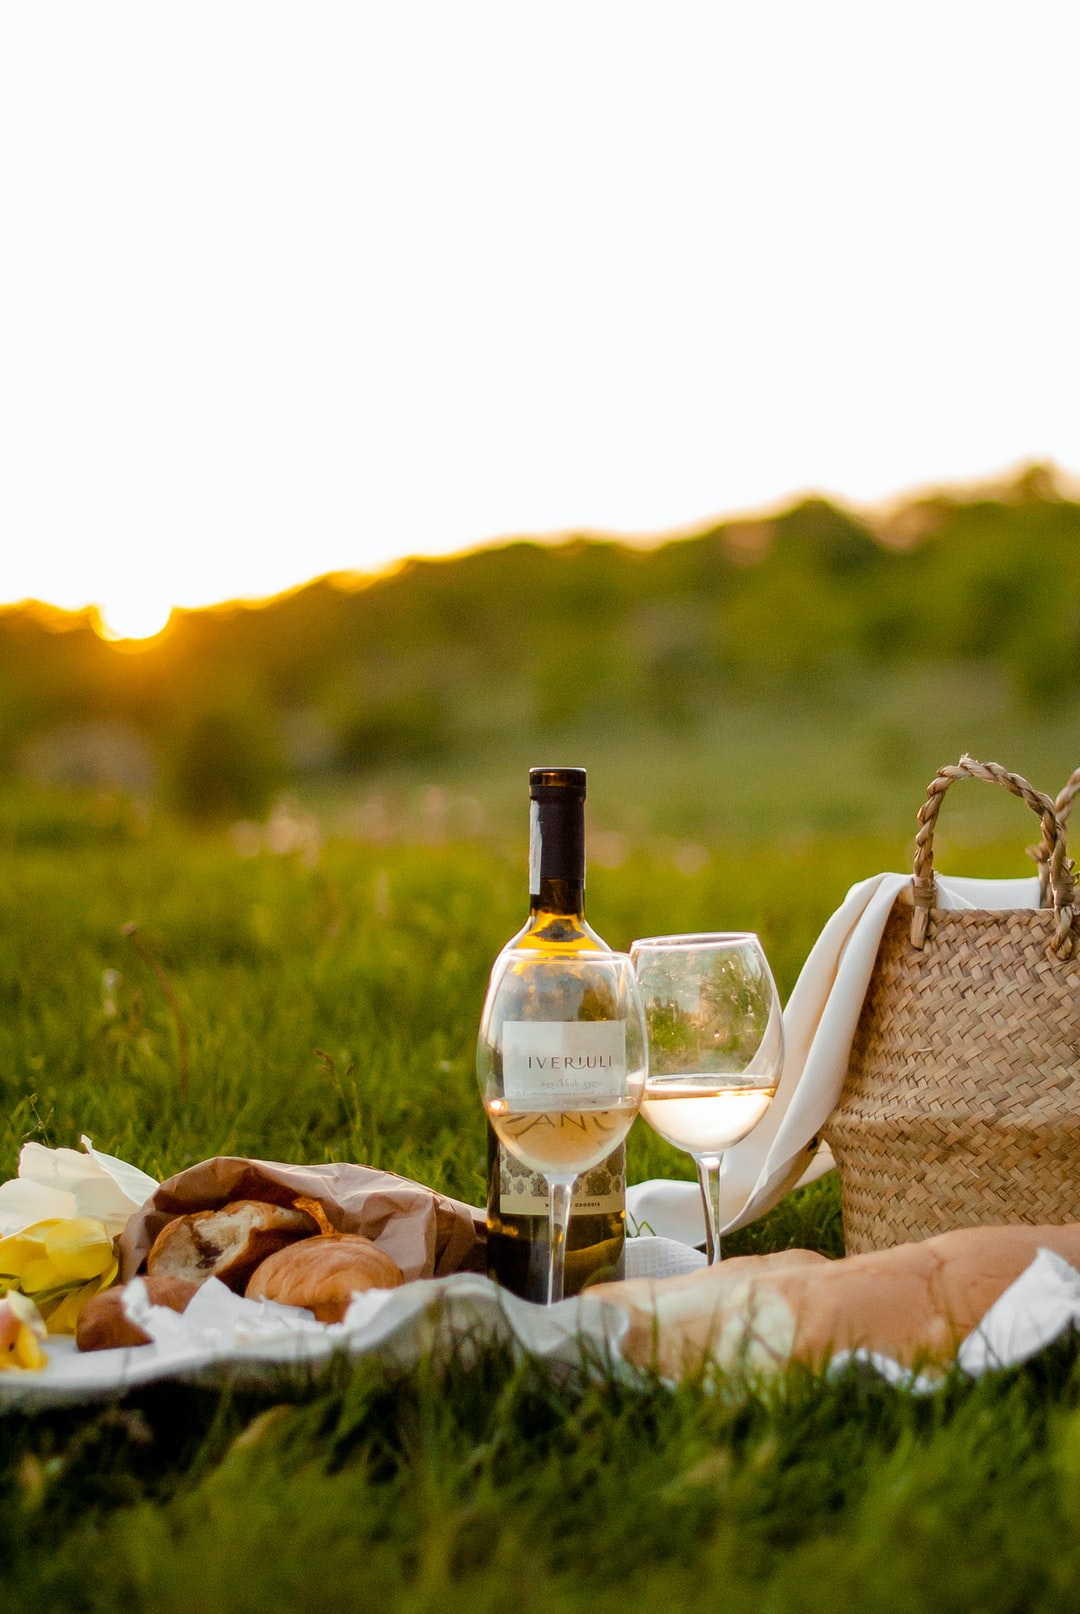 A picnic on the grass at sunset - containing pastries and a bottle of rosé wine